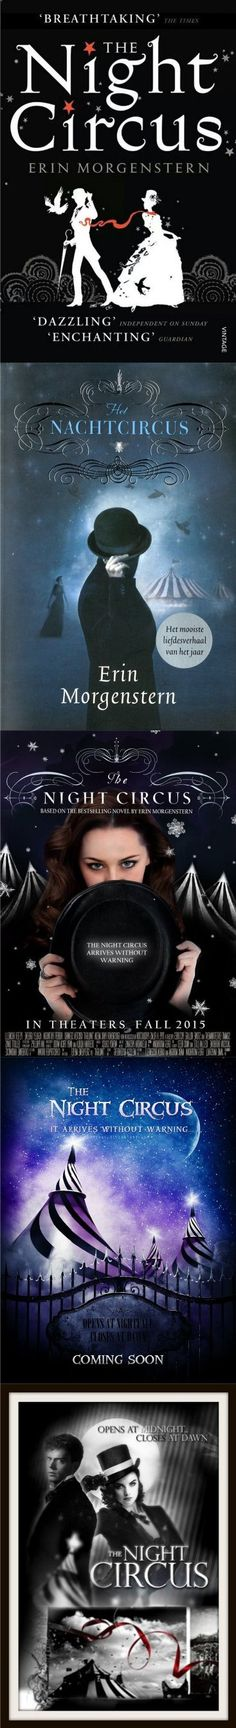 Book covers and posters for The Night Circus.